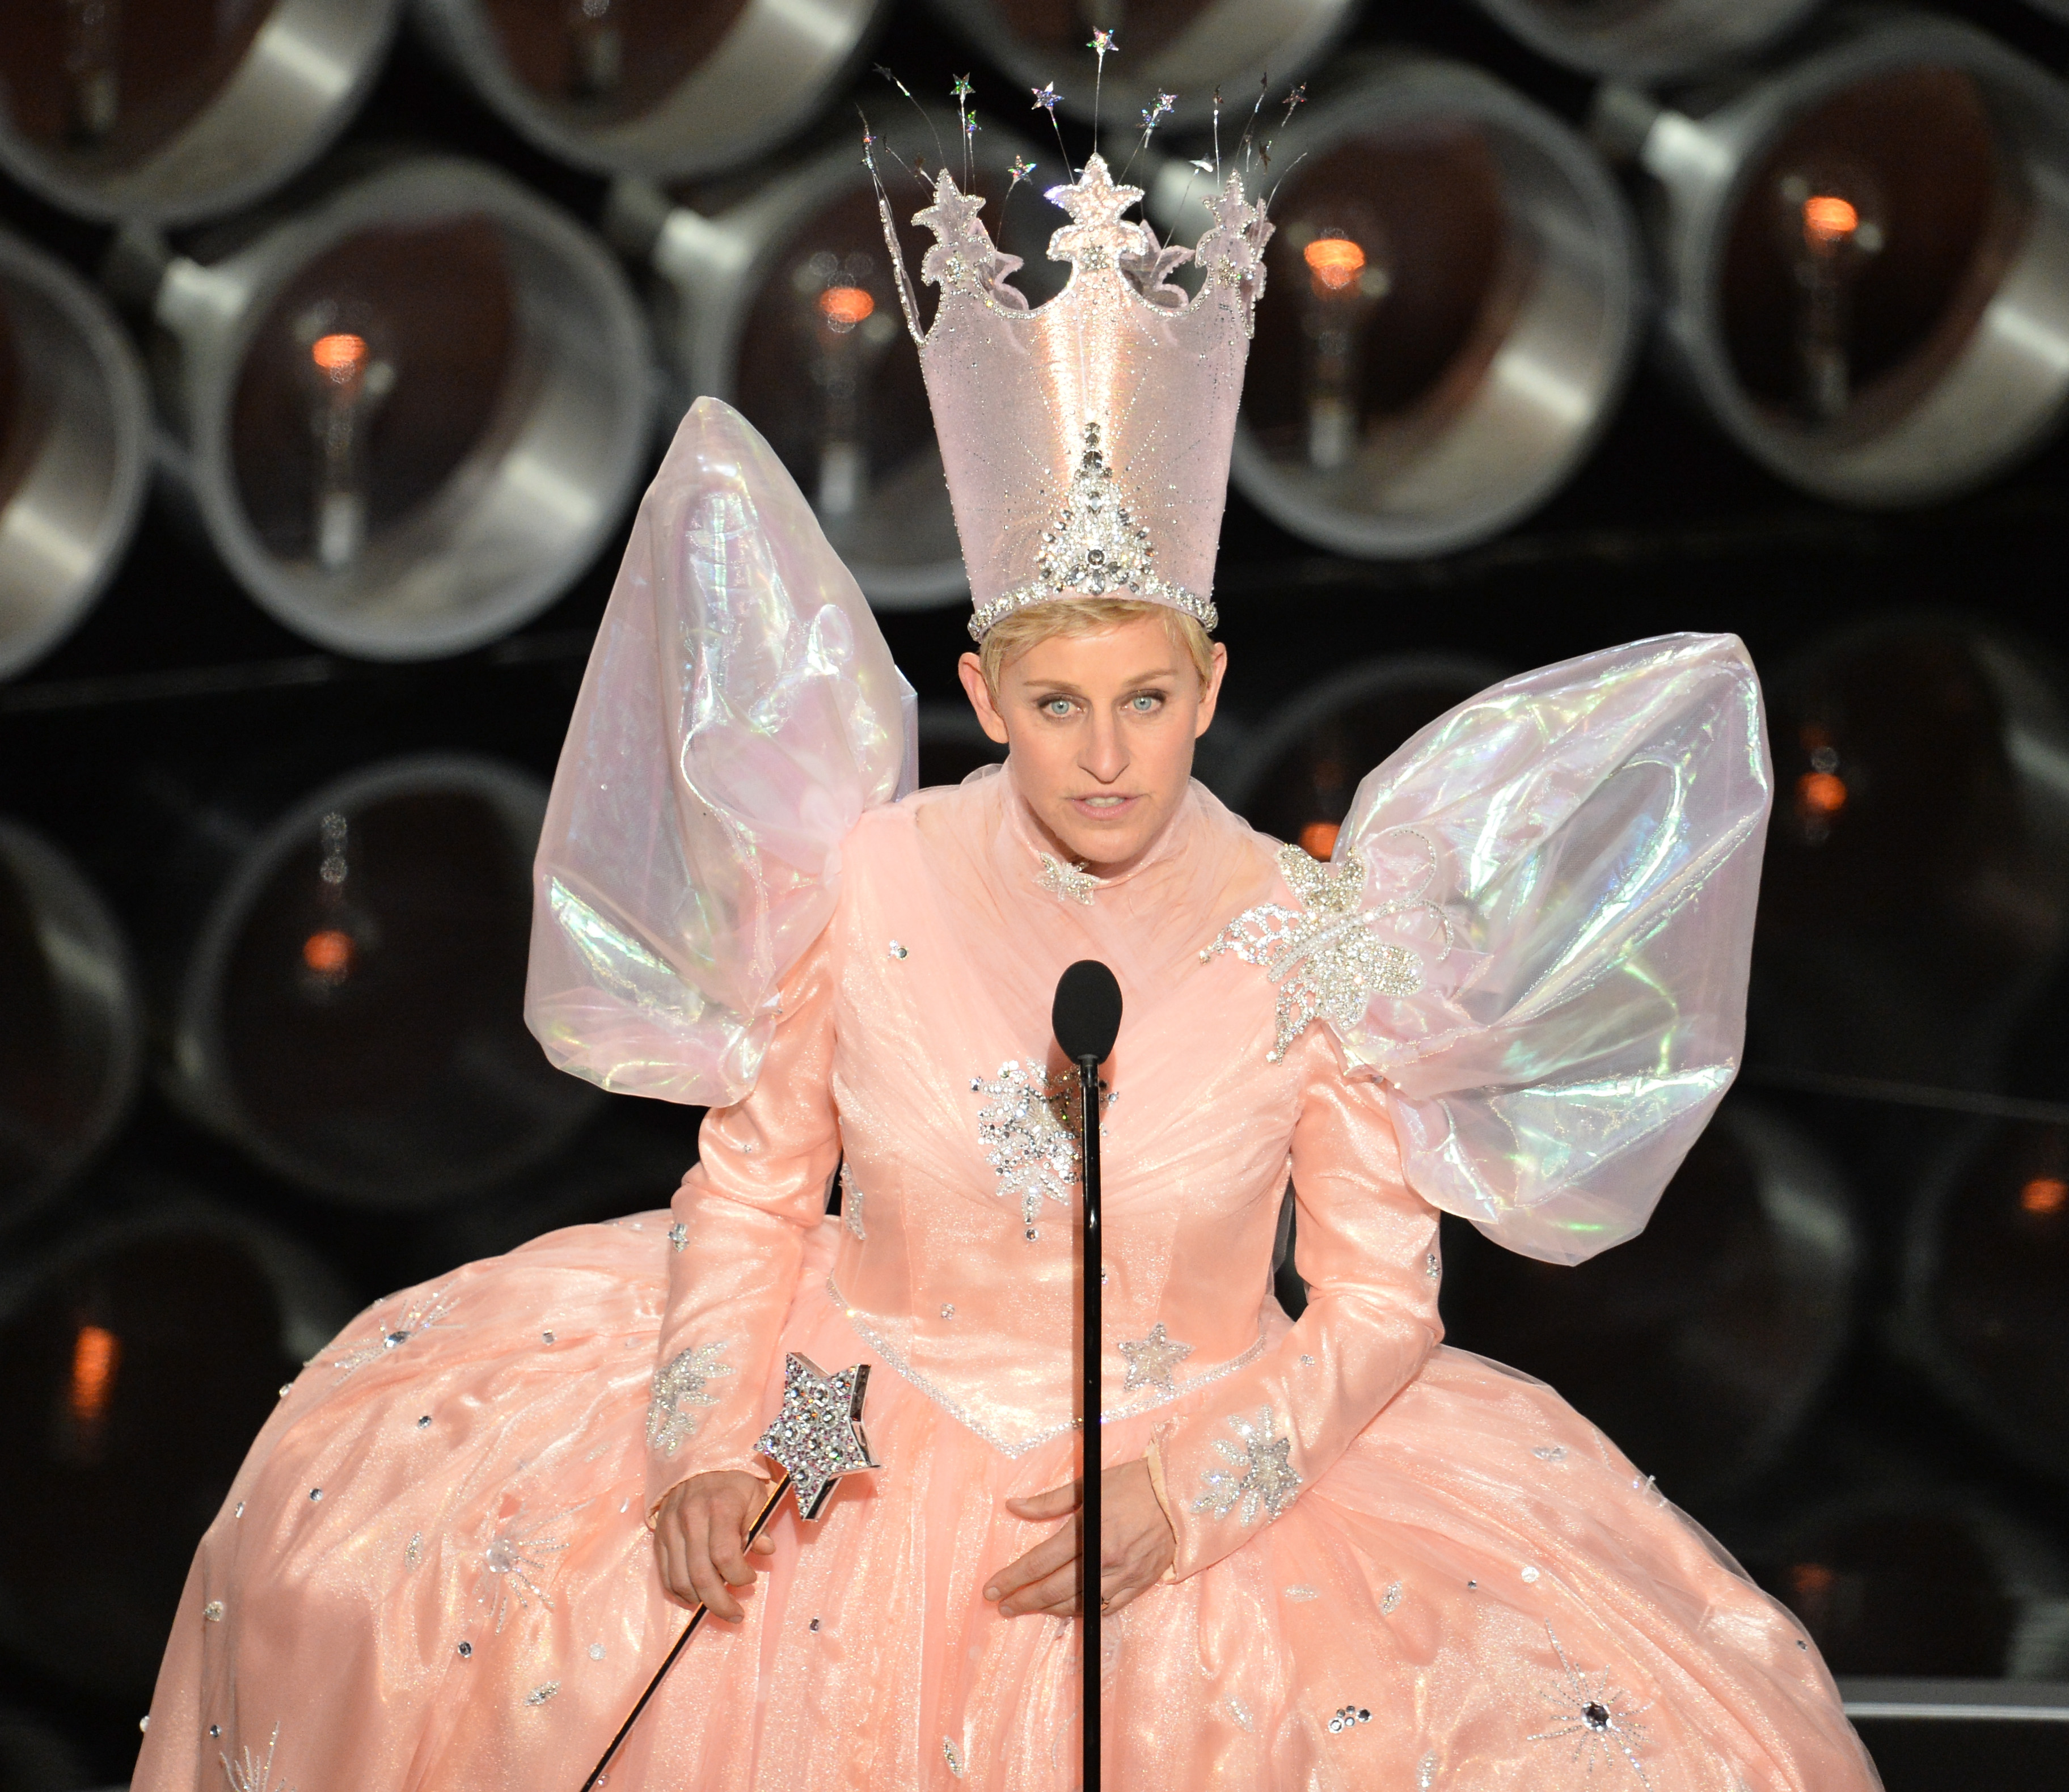 Ellen DeGeneres onstage during the Oscars at the Dolby Theatre on March 2, 2014 in Hollywood, California.